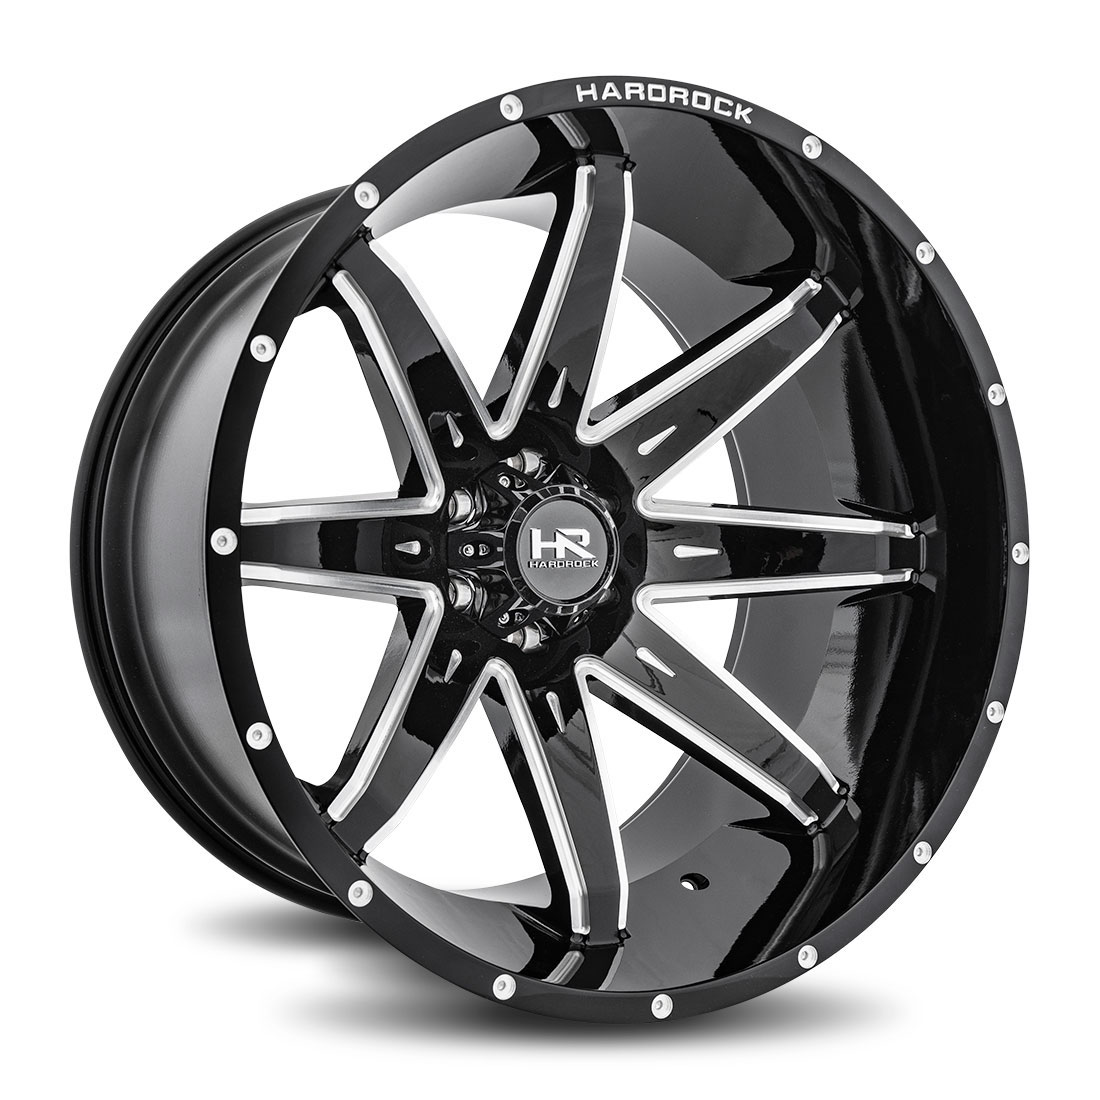 Hardrock Offroad Wheels H502 Painkiller-Xposed - Gloss Black Milled - 24x14